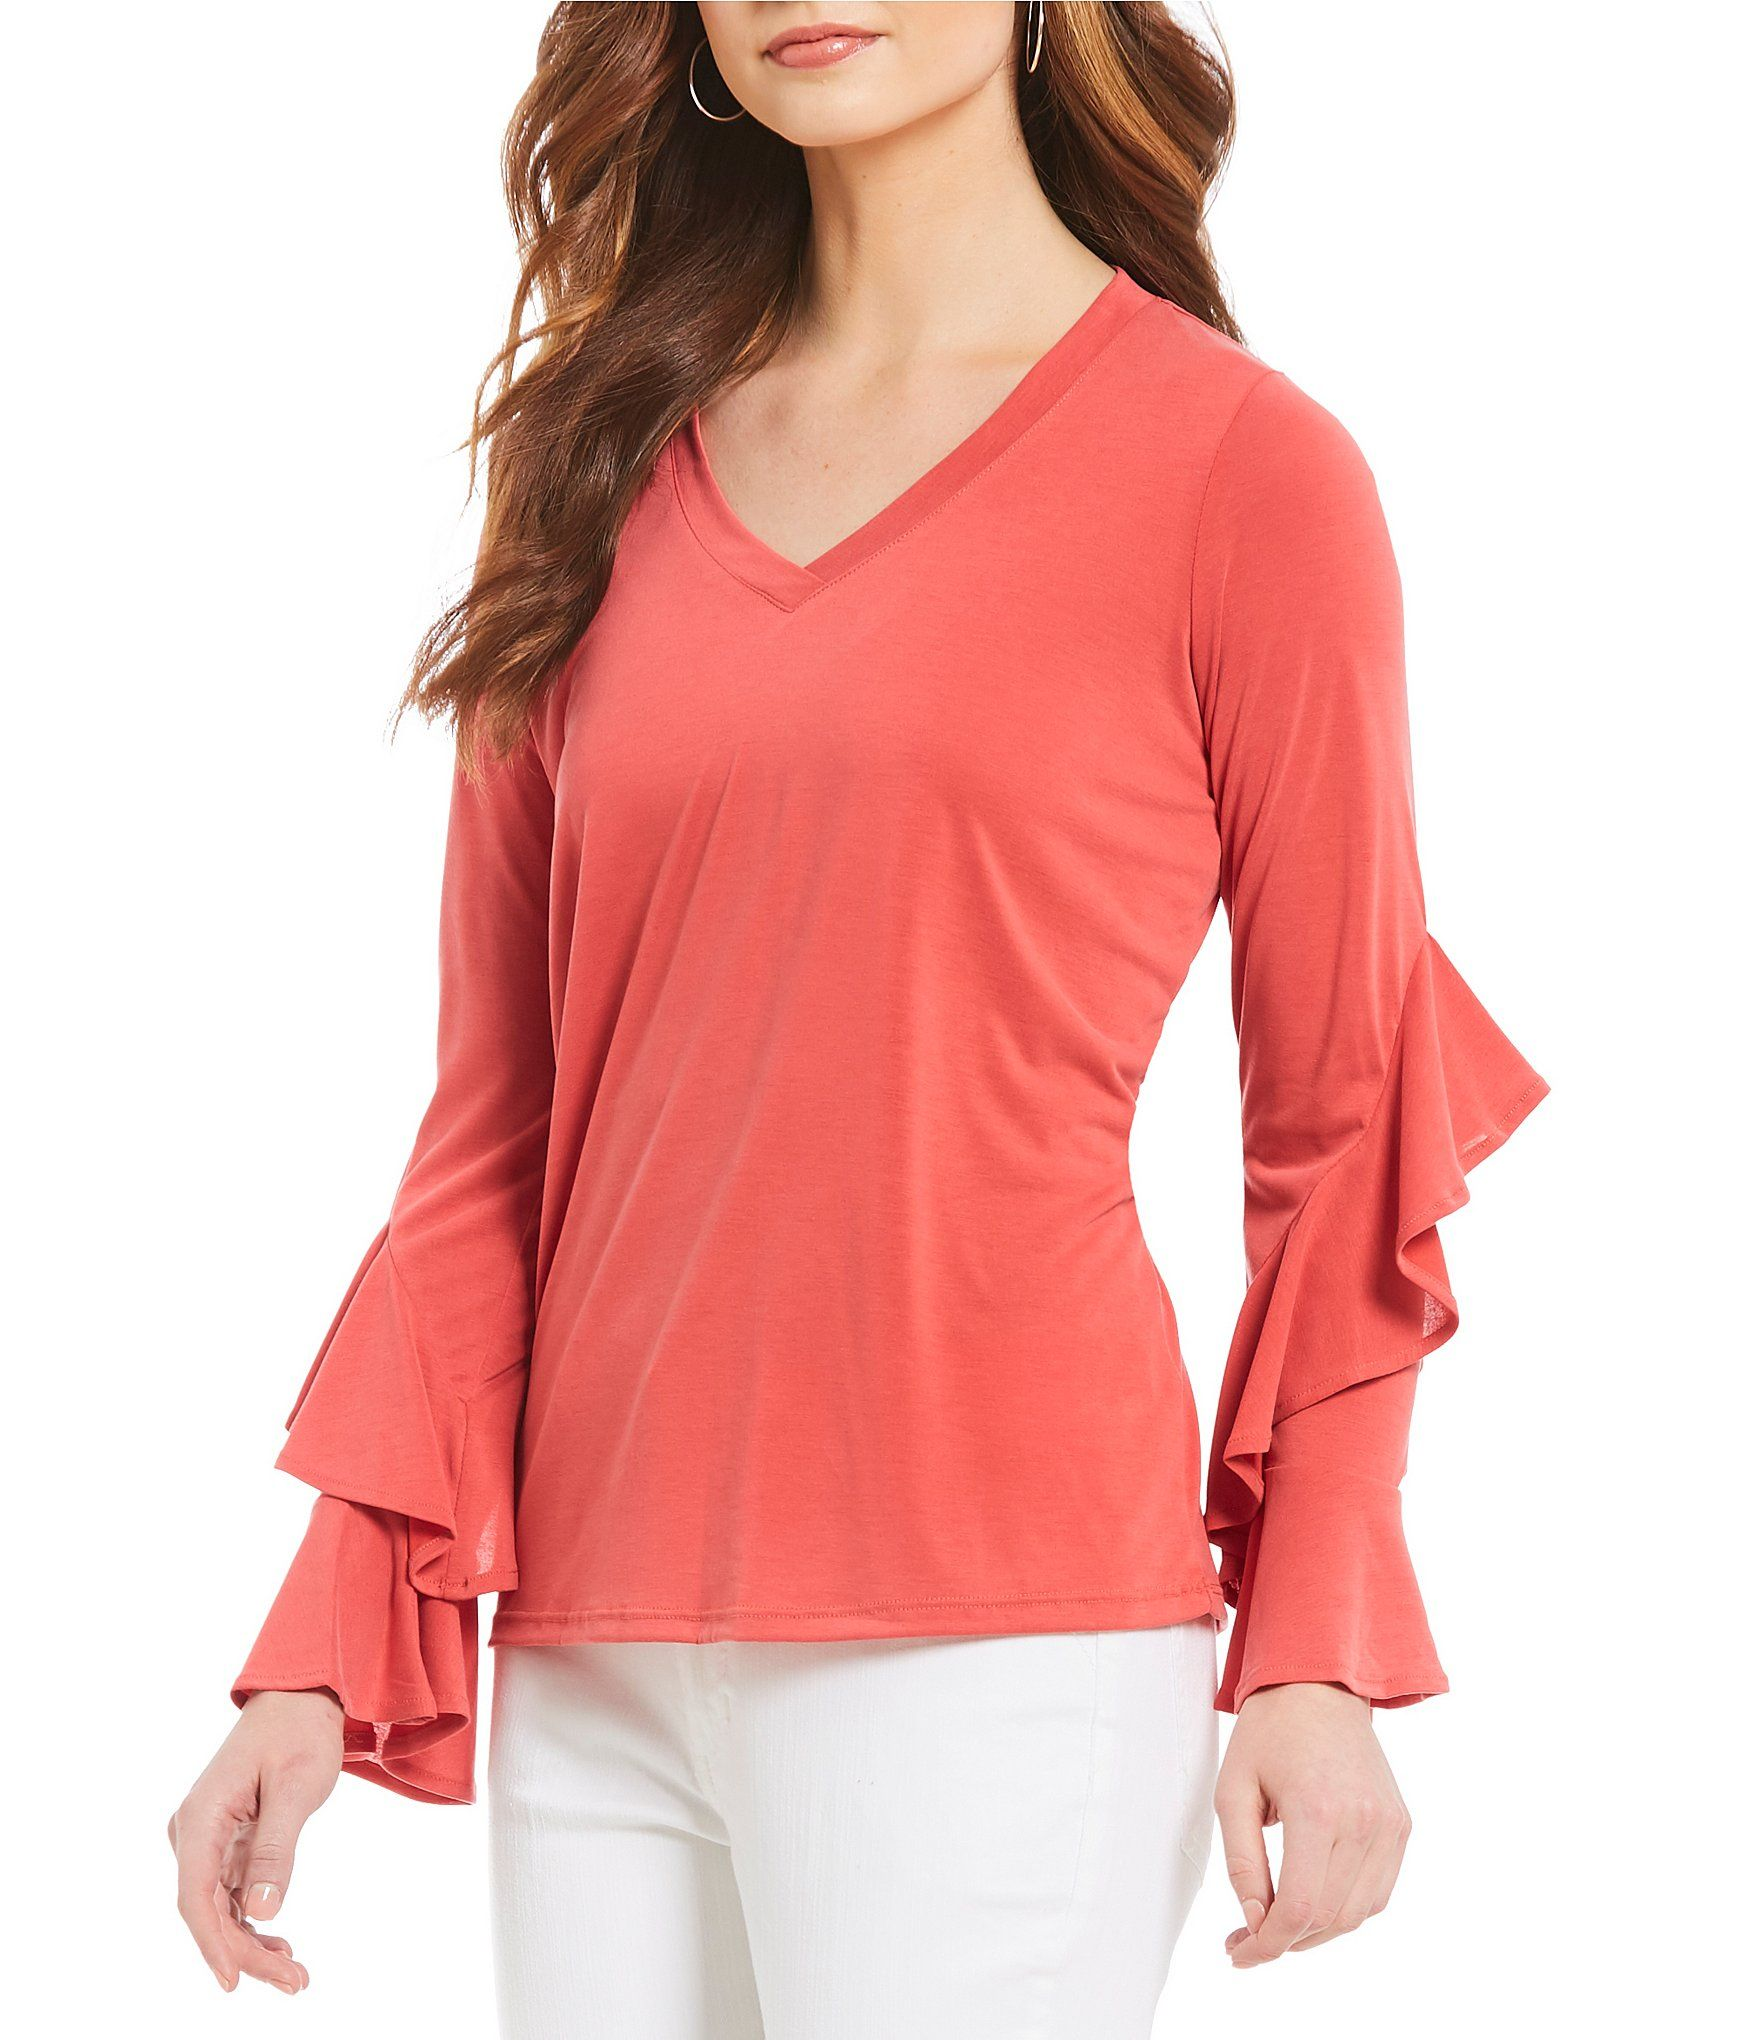 cae121b5b3 Shop for Gibson   Latimer Ruffle Sleeve Blouse at Dillards.com. Visit  Dillards.com to find clothing